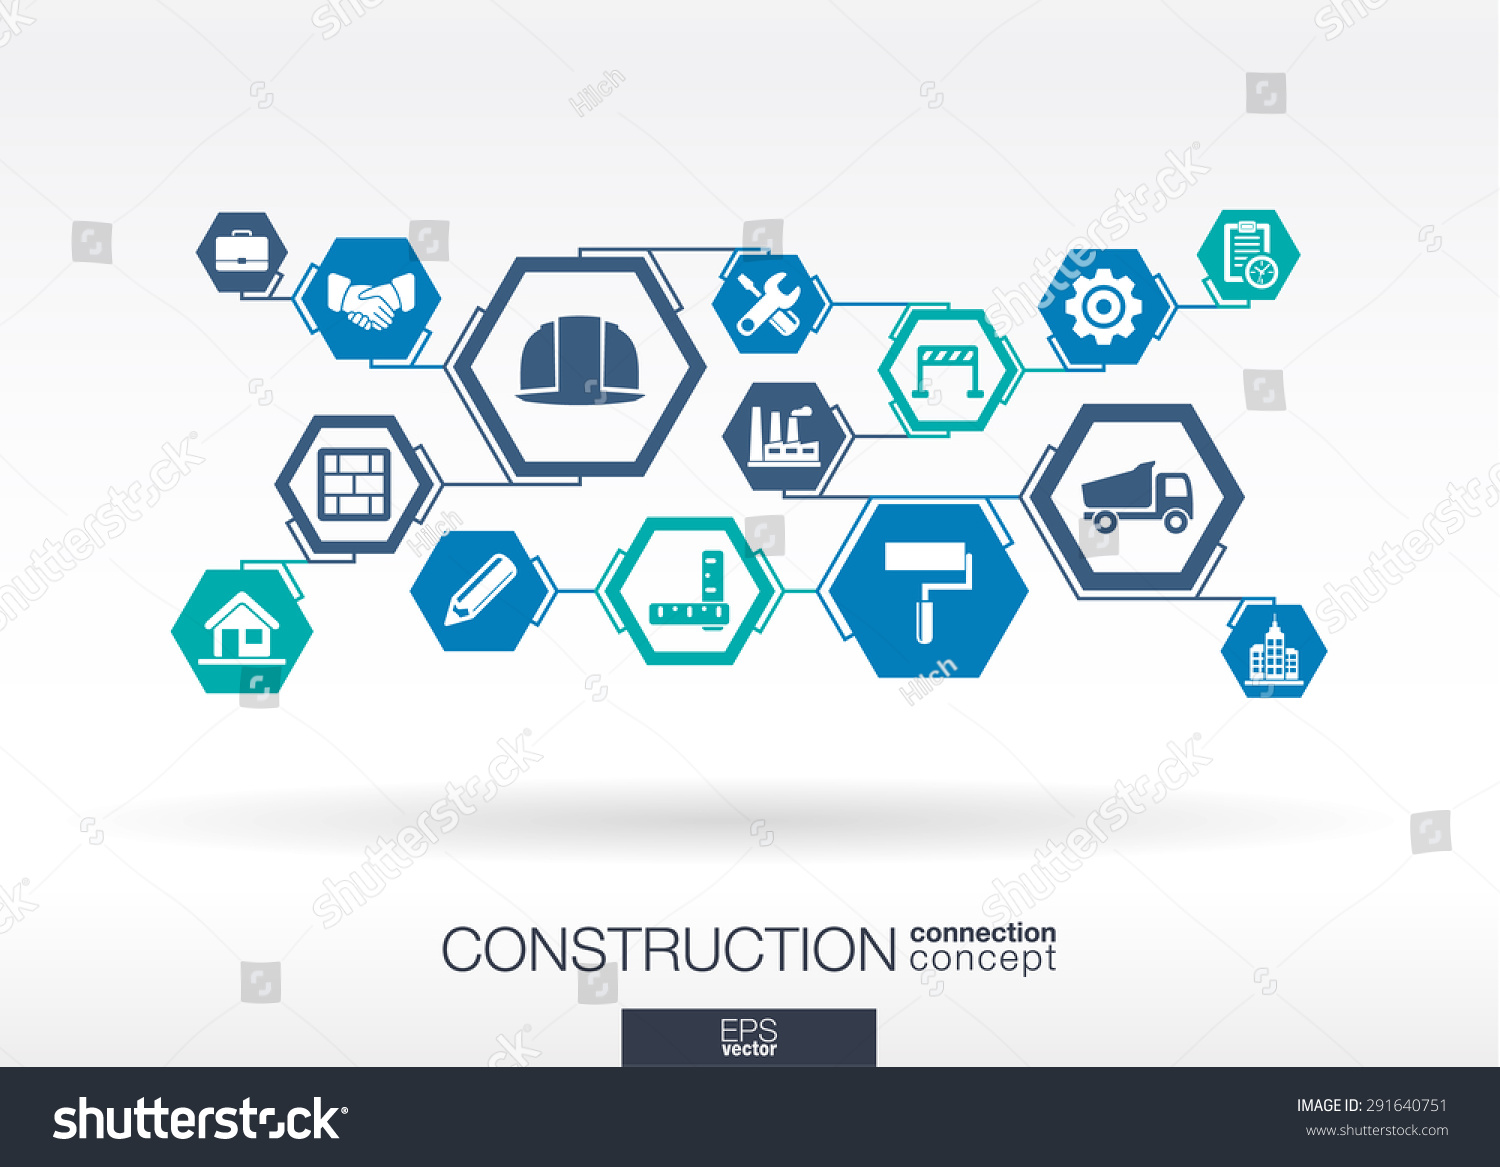 Construction Network Hexagon Abstract Background Lines